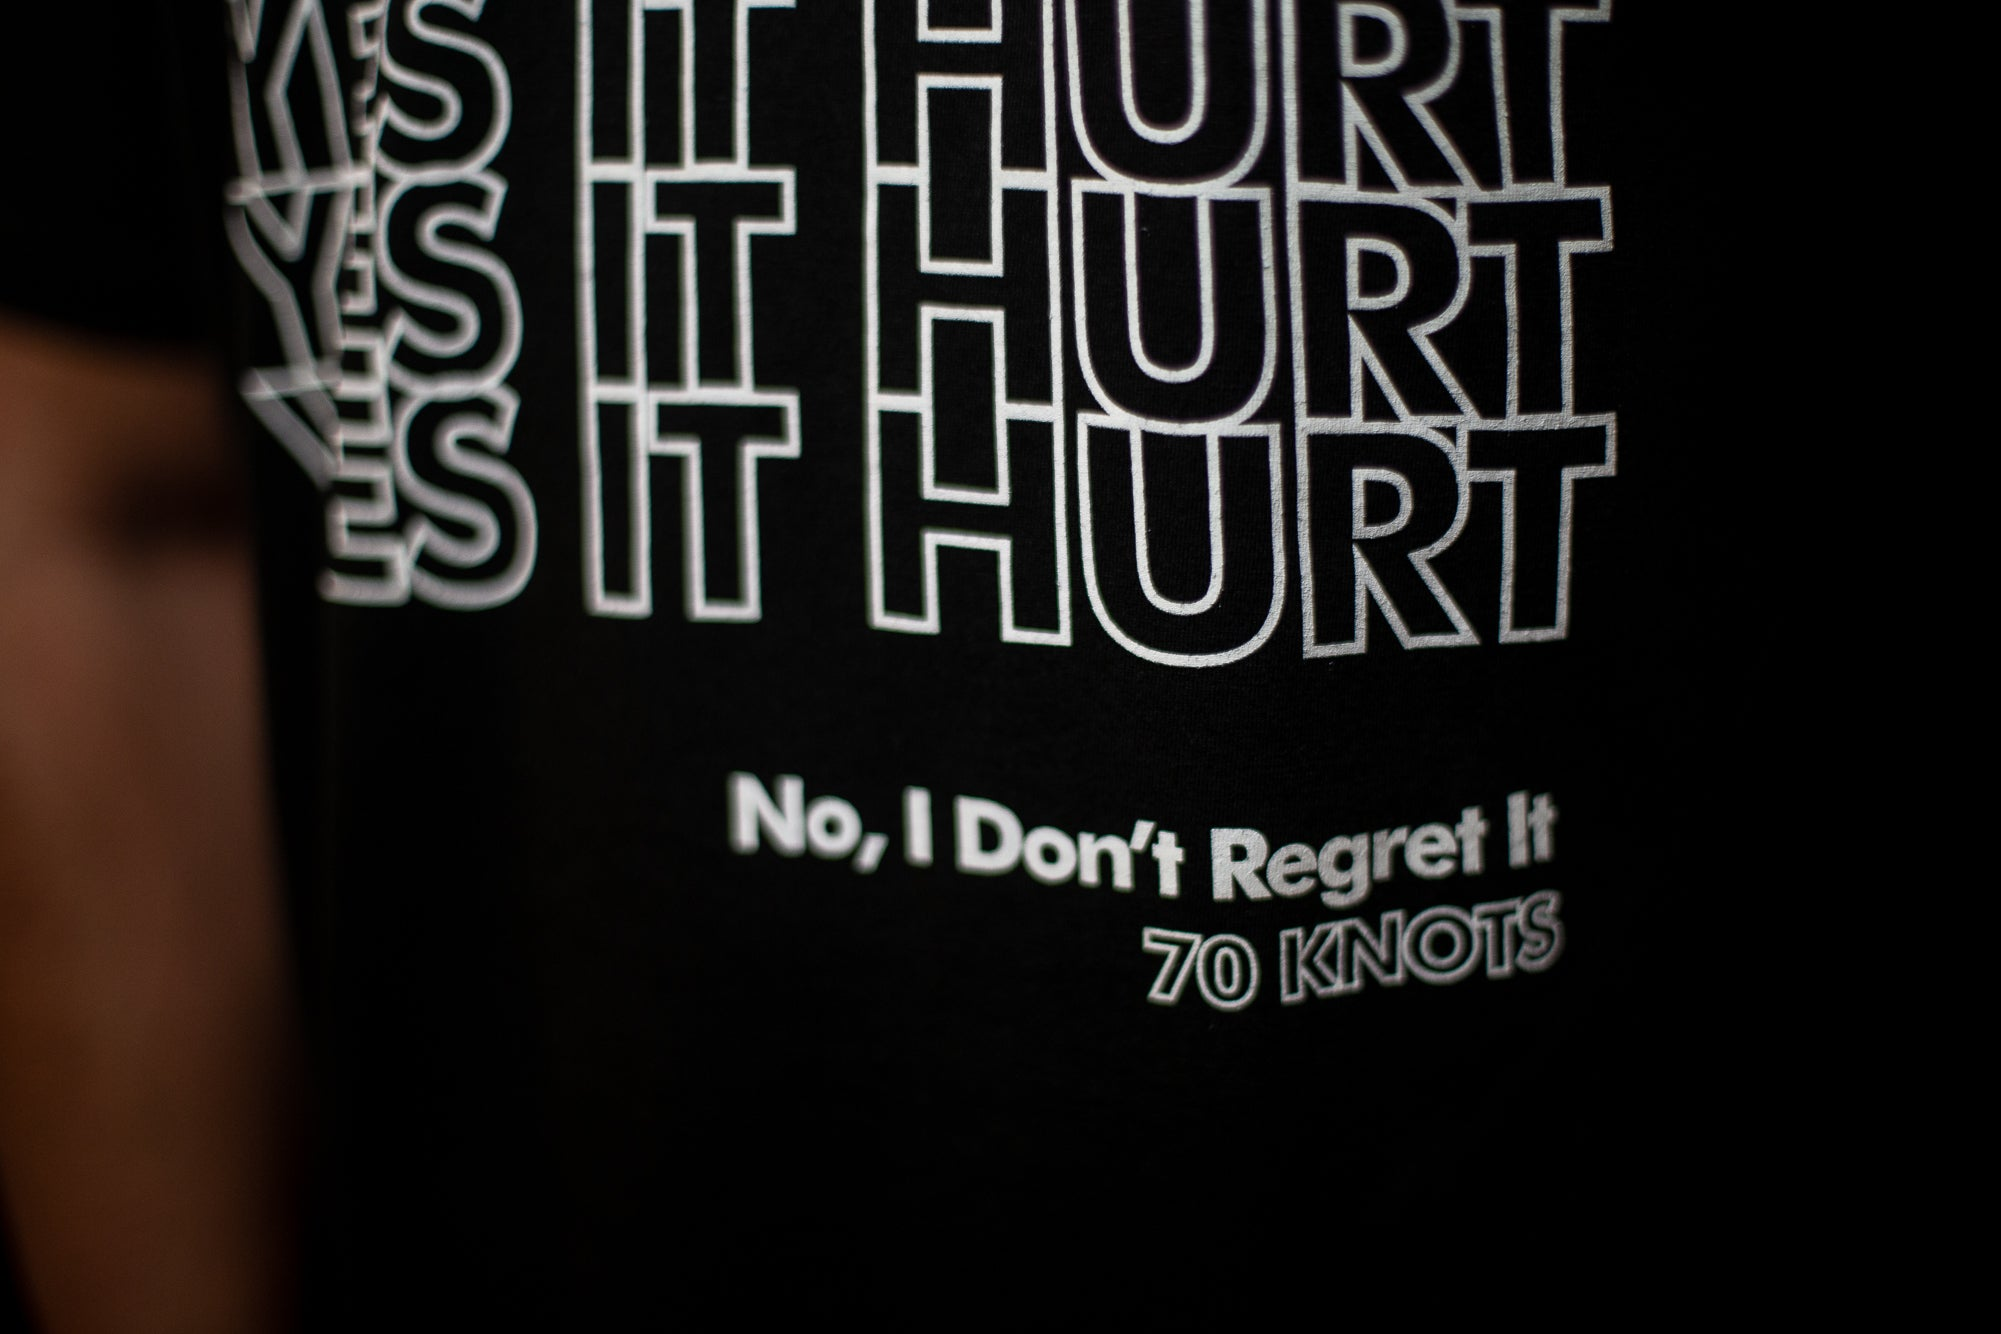 YES IT HURT. NO I DON'T REGRET IT. - 70 Knots Adult Shirt S, M, L, XL Triblend Super Soft Tee - 70 Knots